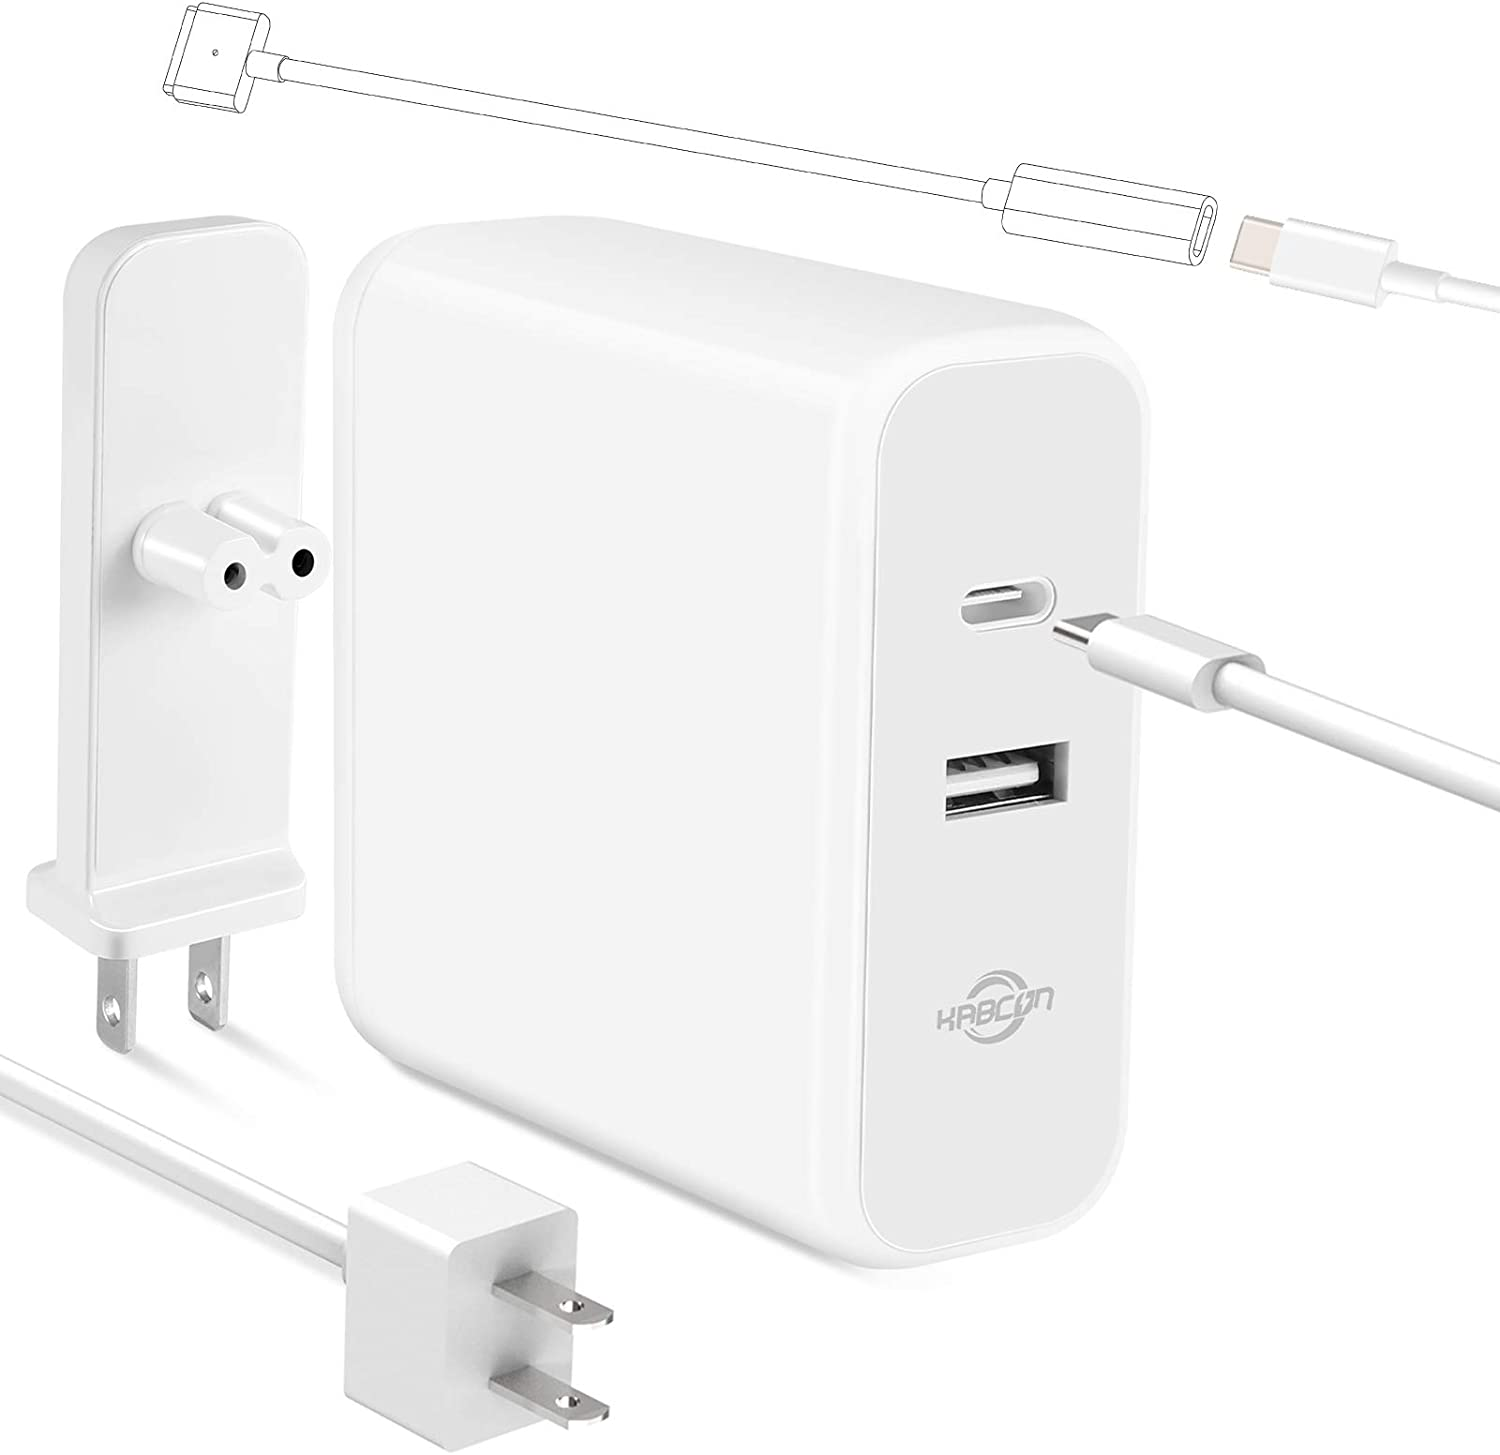 Mac Book Charger Mac Book Air Charger, Type C 60W Power Adapter Charger Compatible with Mac Book Air 2018 Mac Book Pro 2017/2018 and Mac Book Air Released After Mid 2012 Replace Magnetic 2 Connector